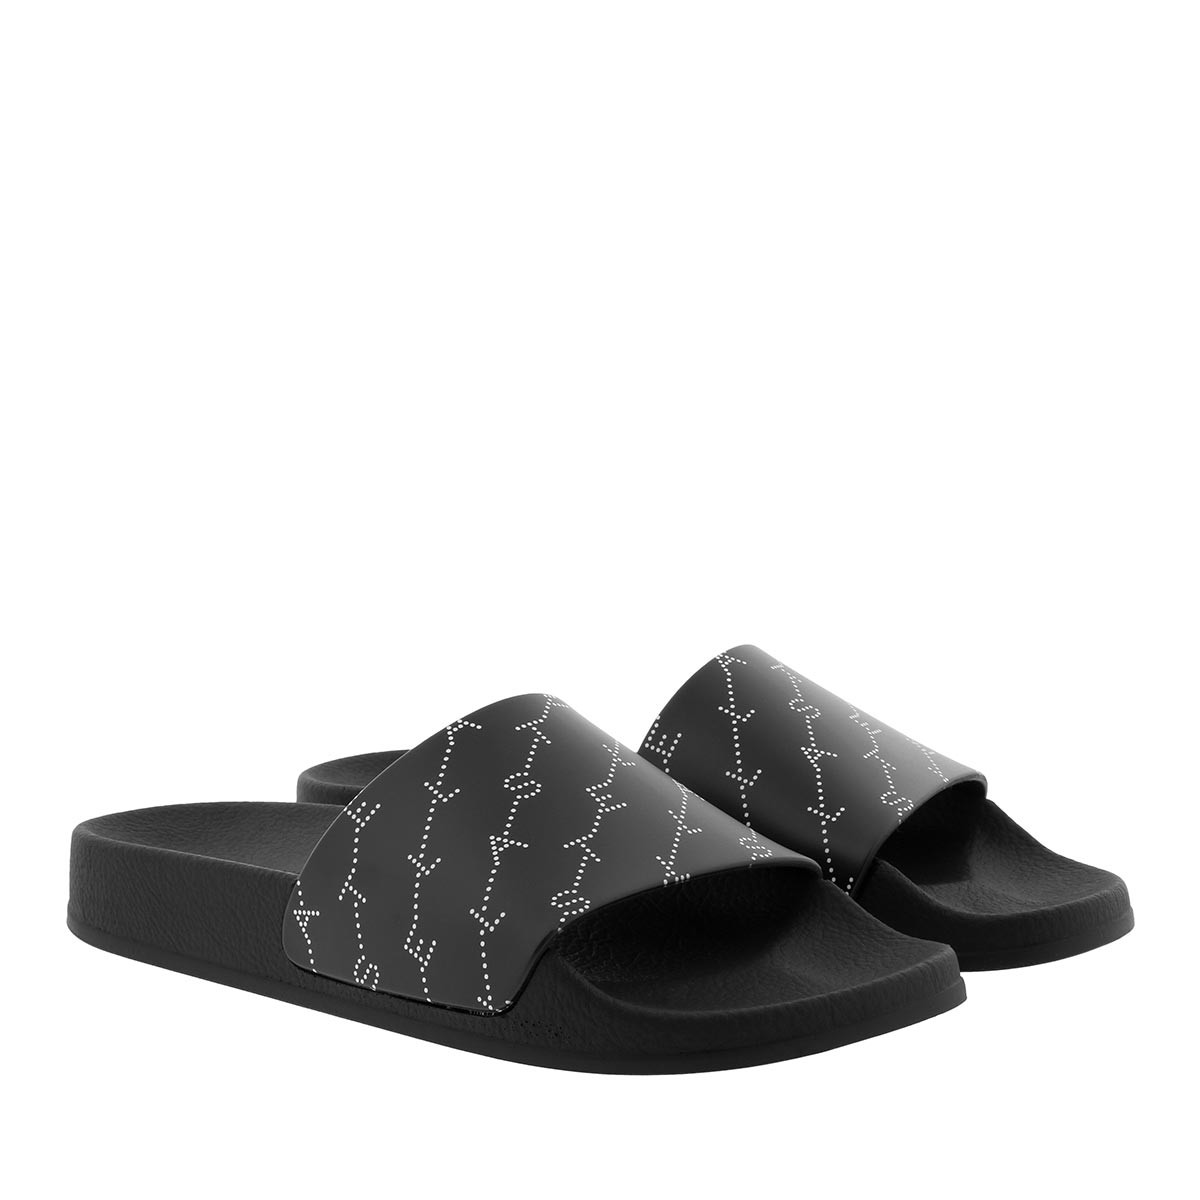 Stella McCartney Sandalen - Monogram Strap Slides Black/White - in schwarz - für Damen